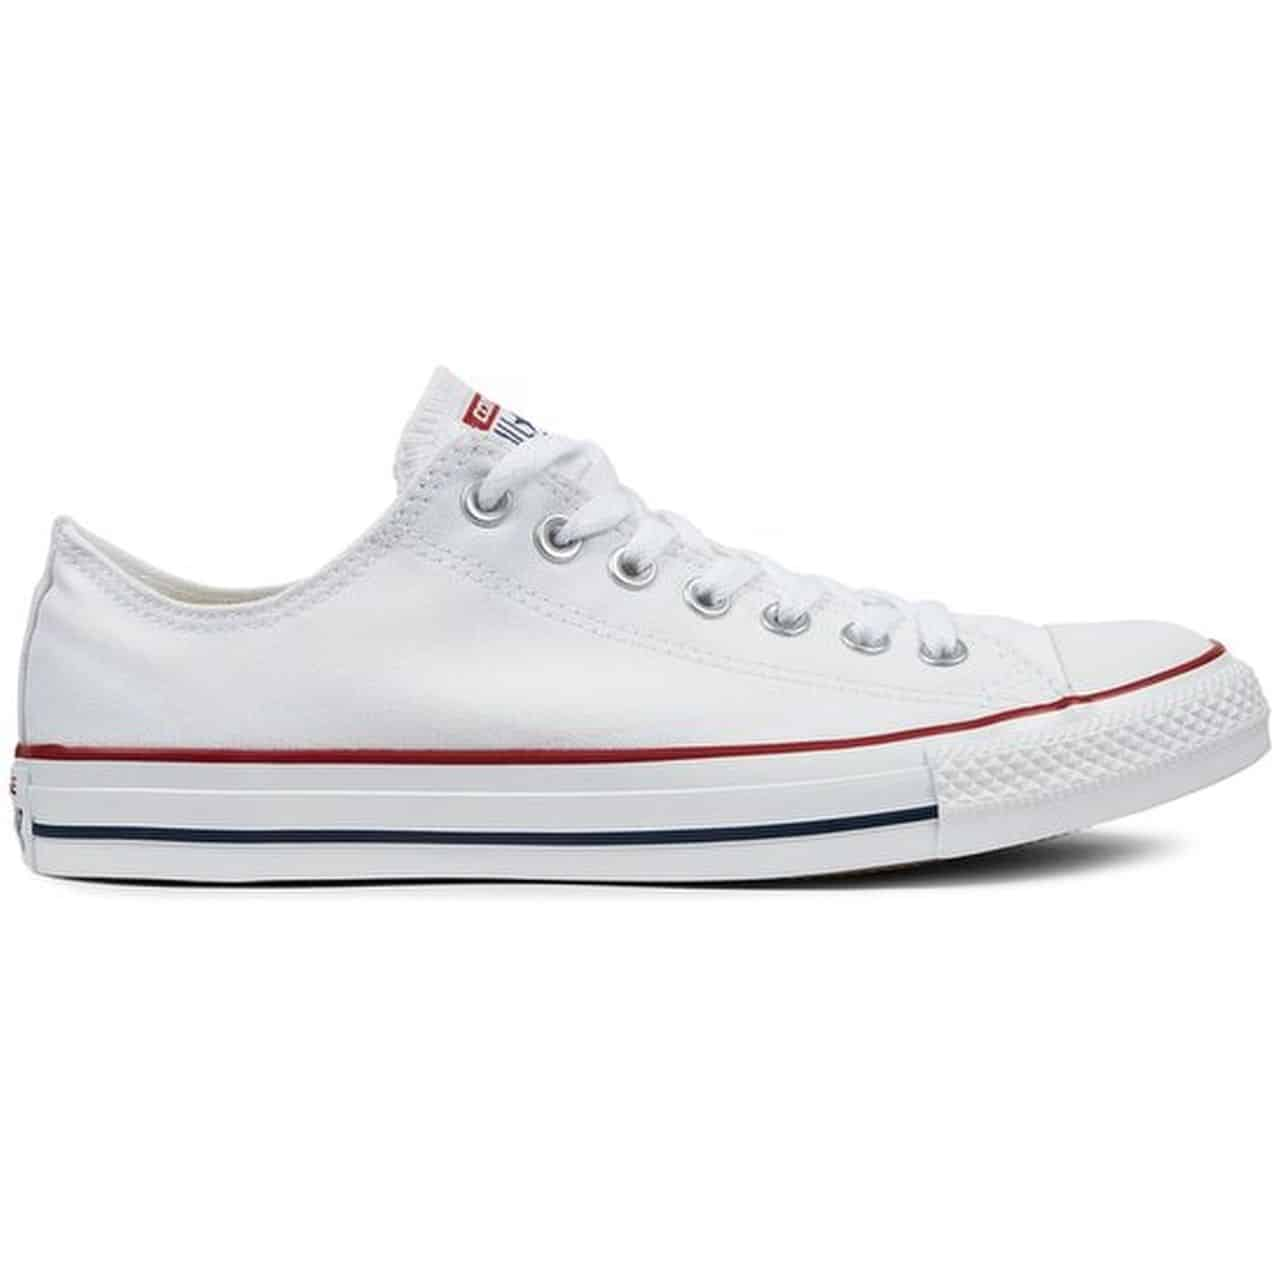 TENISI ORIGINALI CONVERSE  ALL STAR OX - M7652C